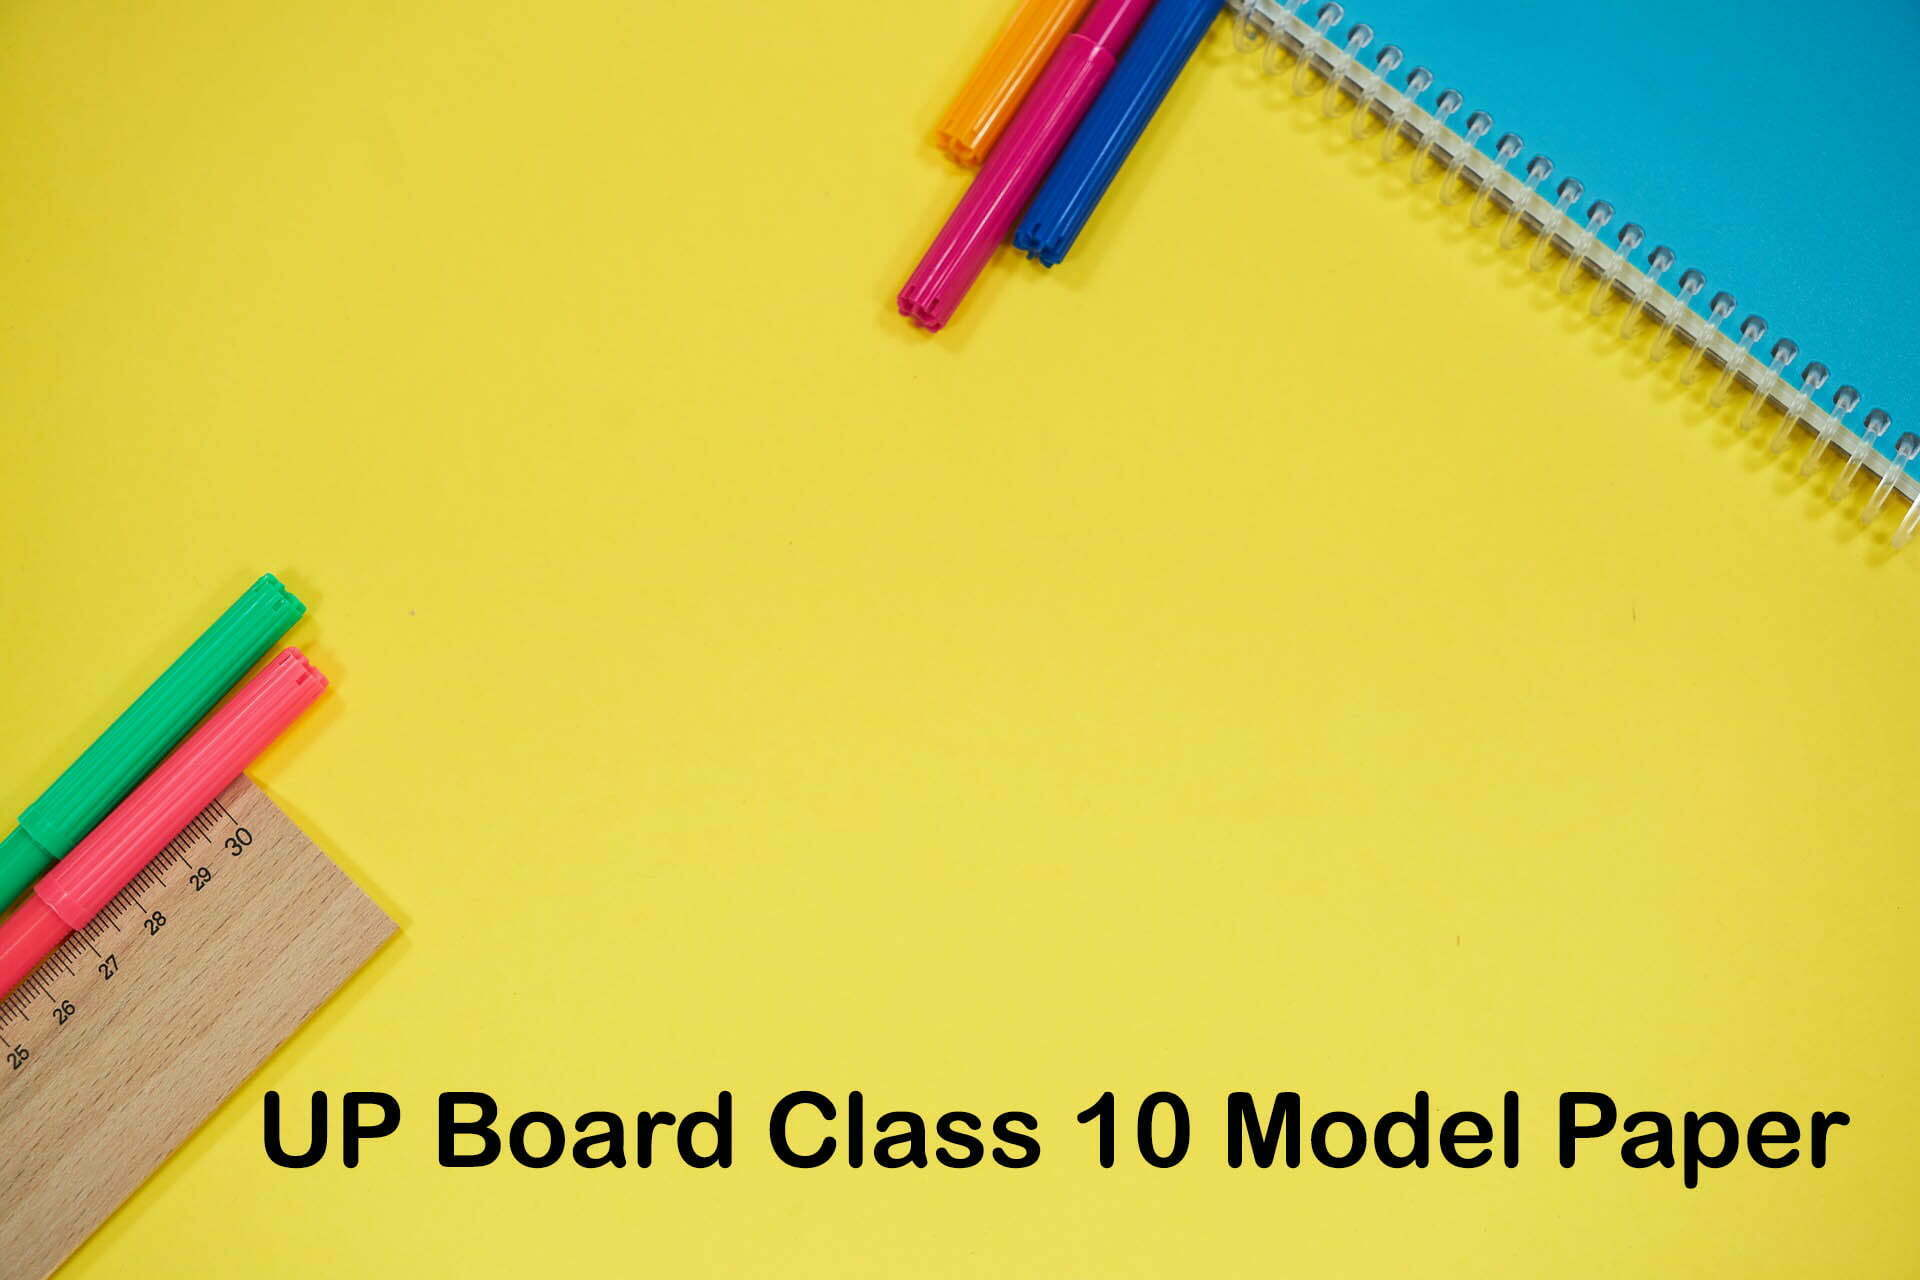 UP Board Class 10 Model Paper